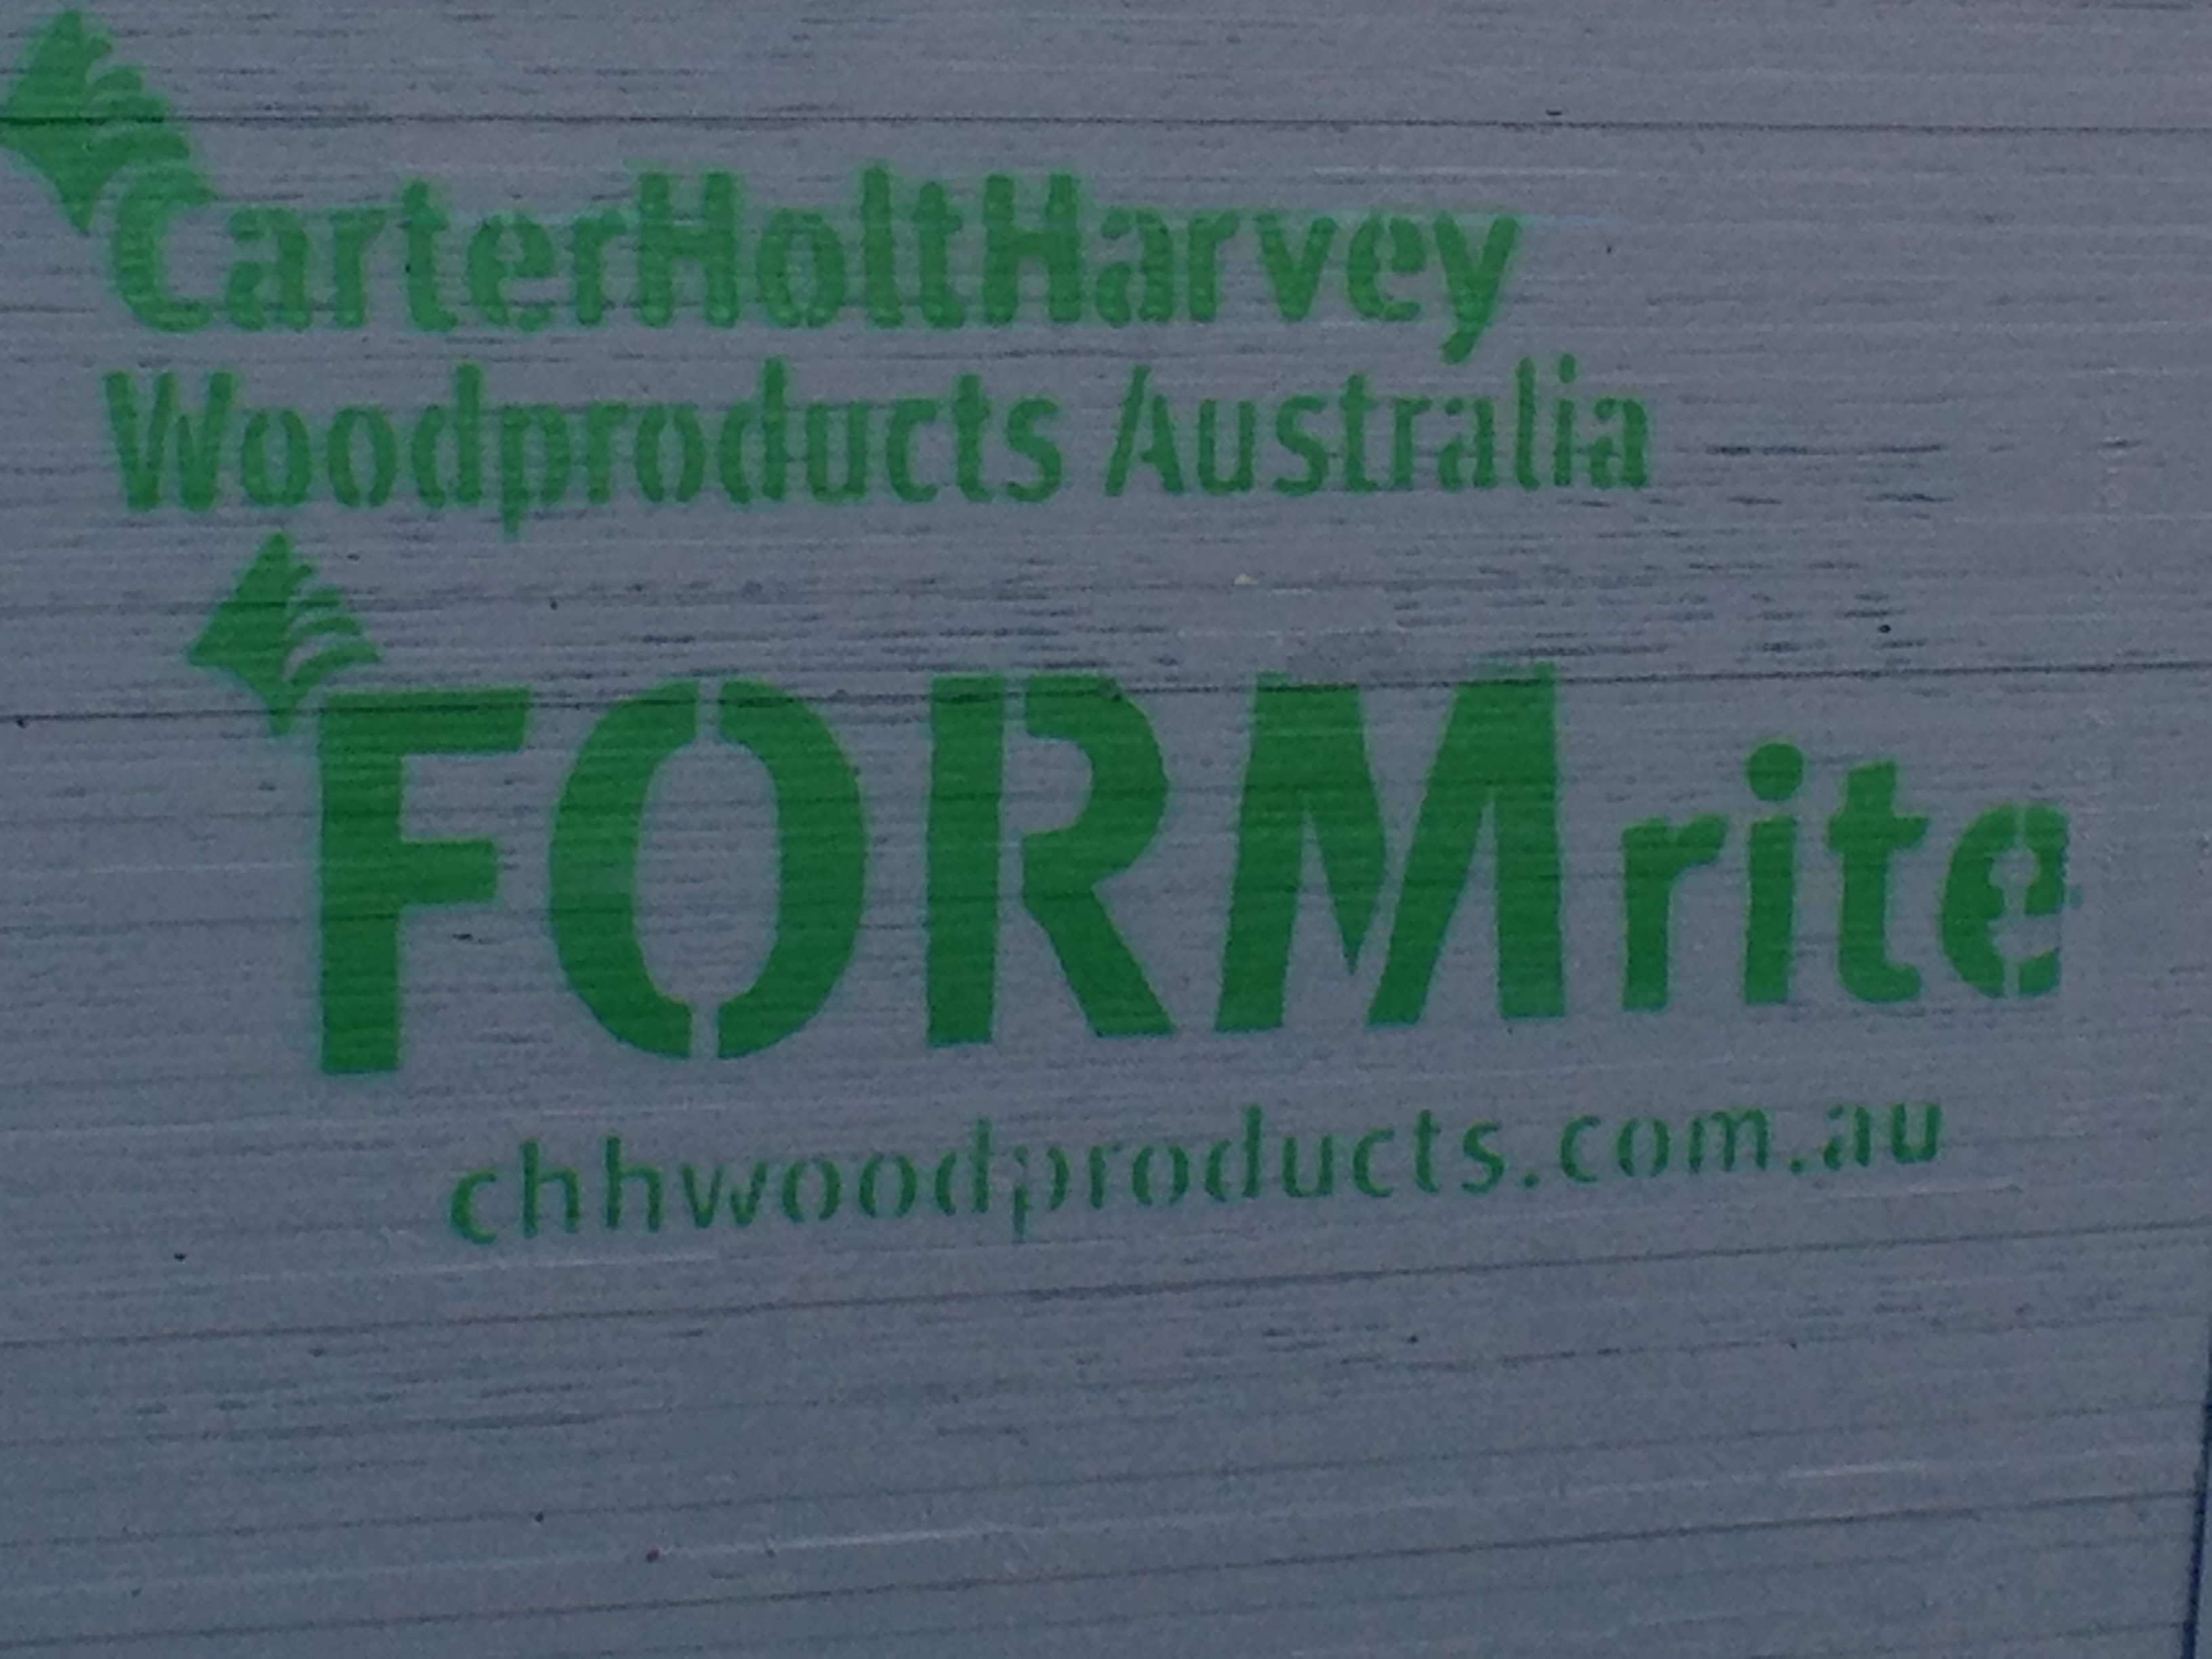 Hatch Timber Group Pty Ltd